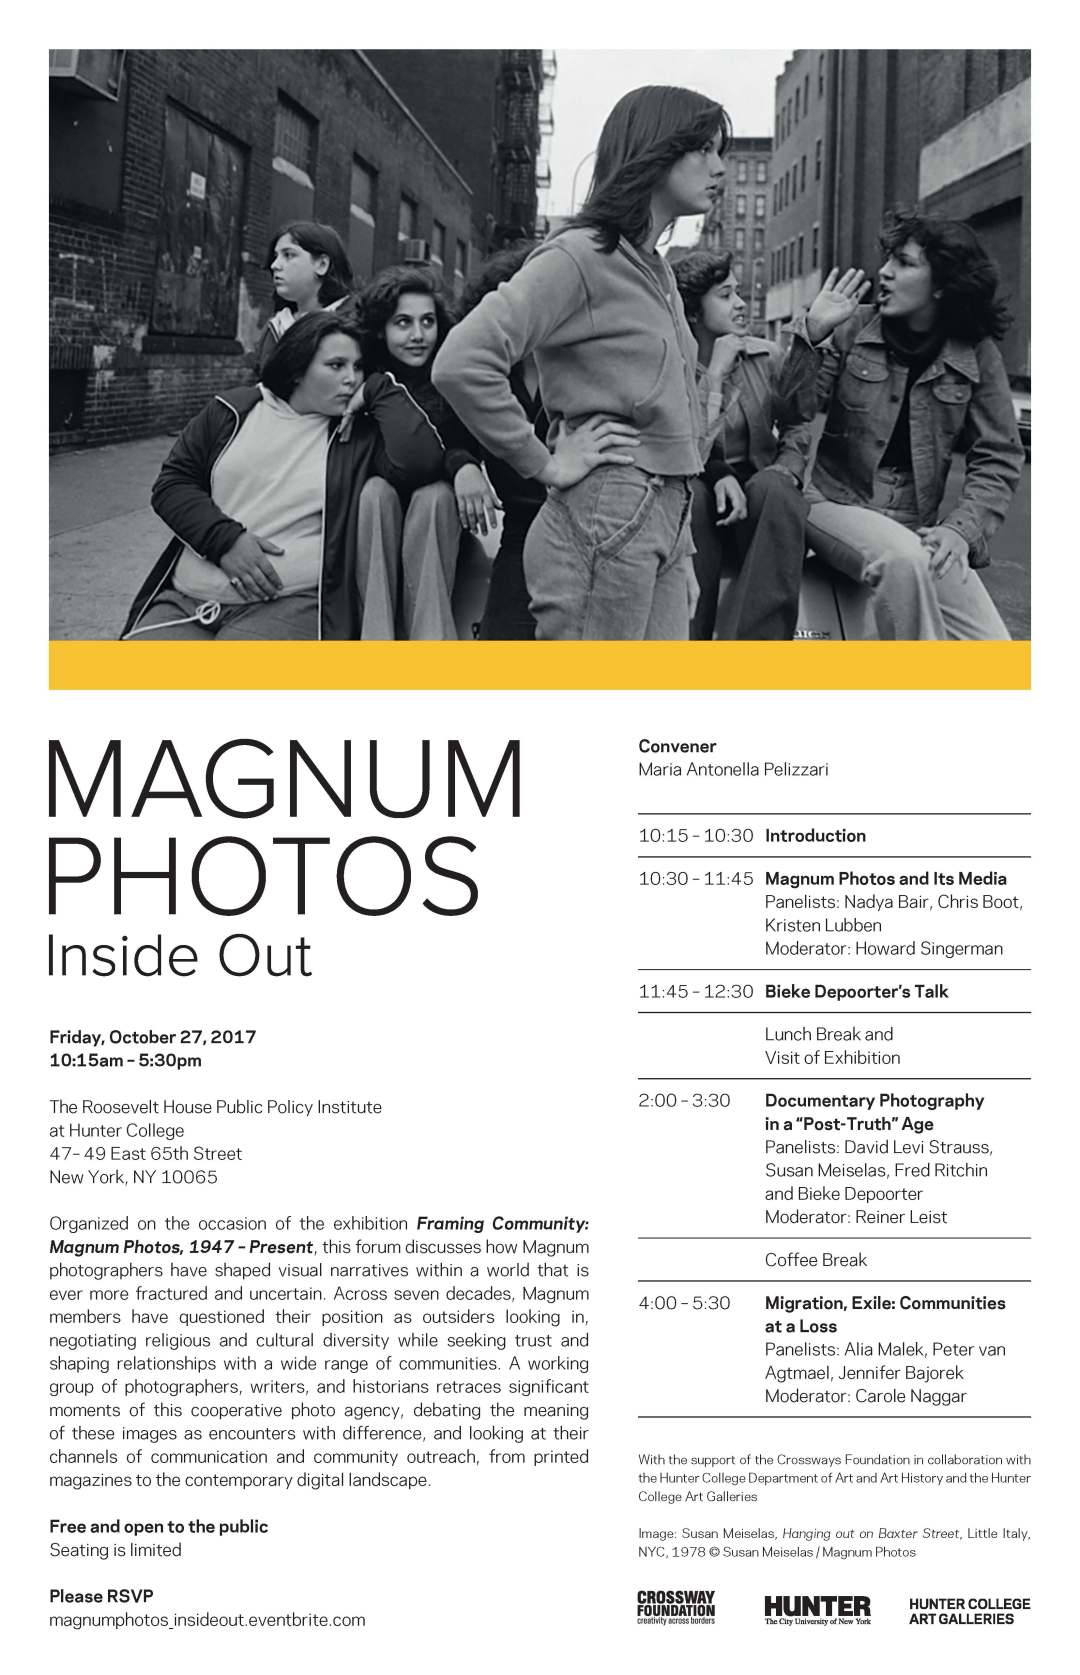 Magnum_Photos_Inside_Out_Poster_v9